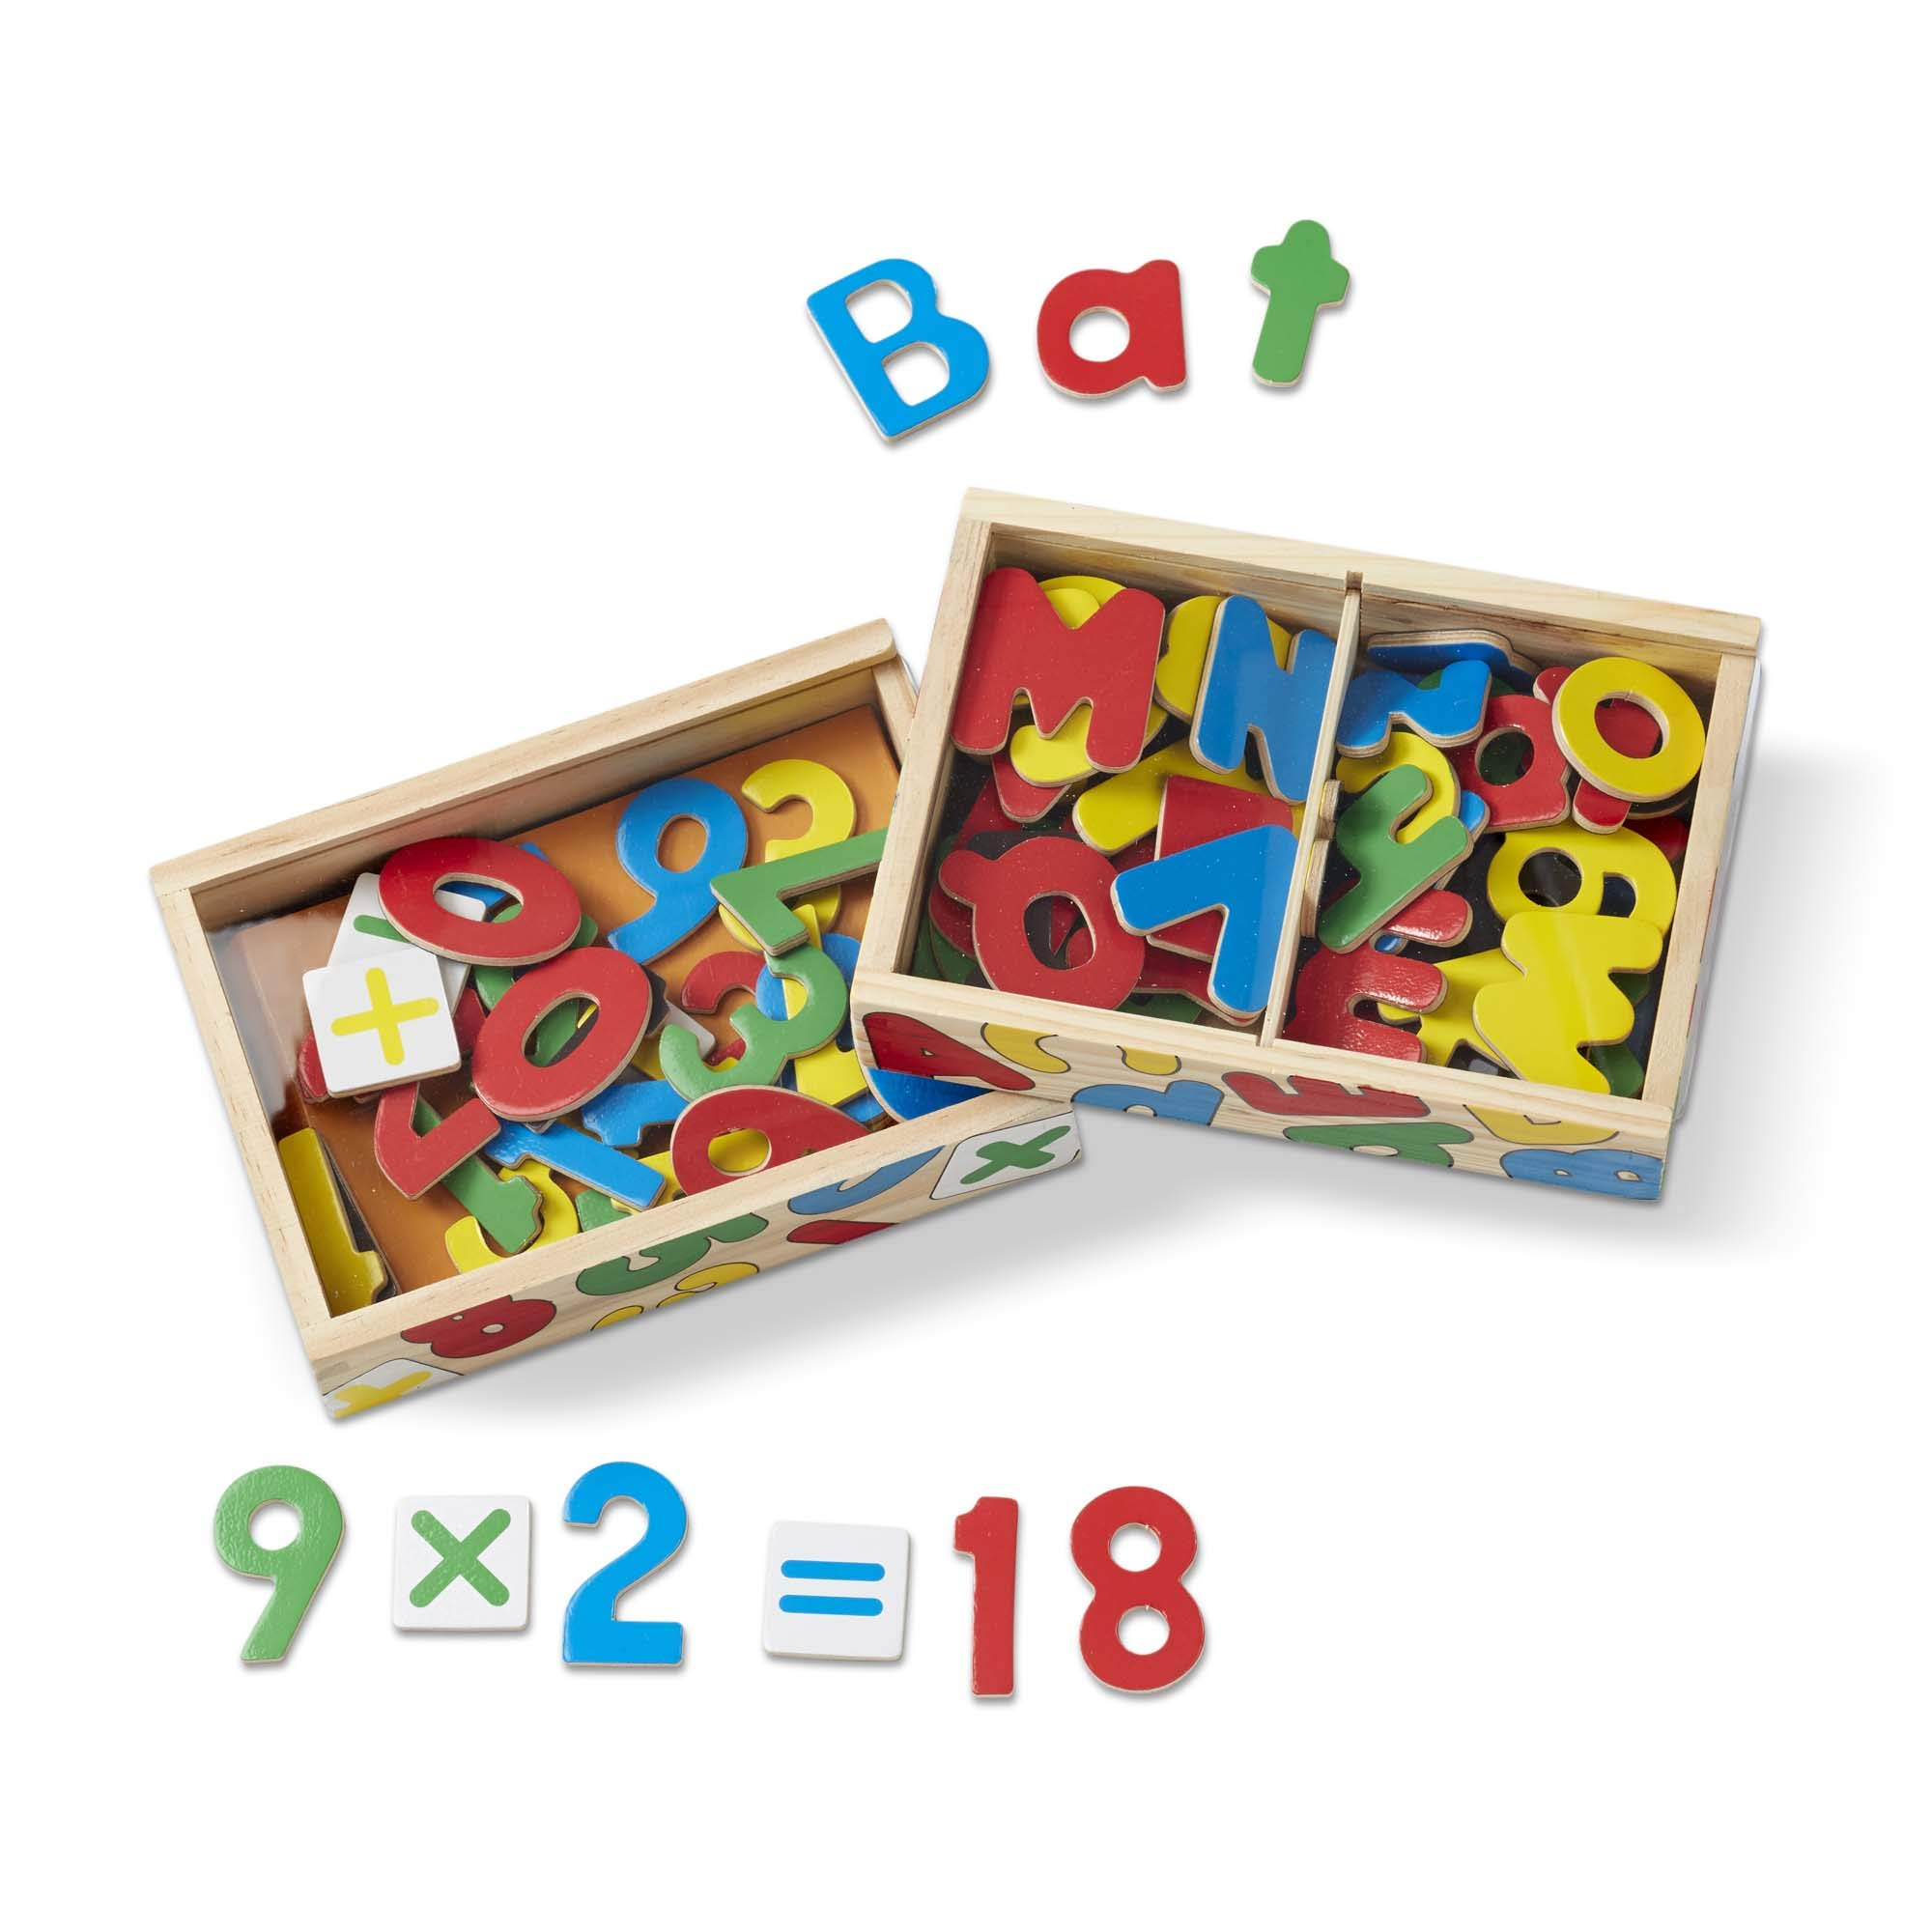 Melissa & Doug Deluxe Magnetic Letters and Numbers Set (89 Wooden Magnets, Great Gift for Girls and Boys - Best for 3, 4, 5, and 6 Year Olds) by Melissa & Doug